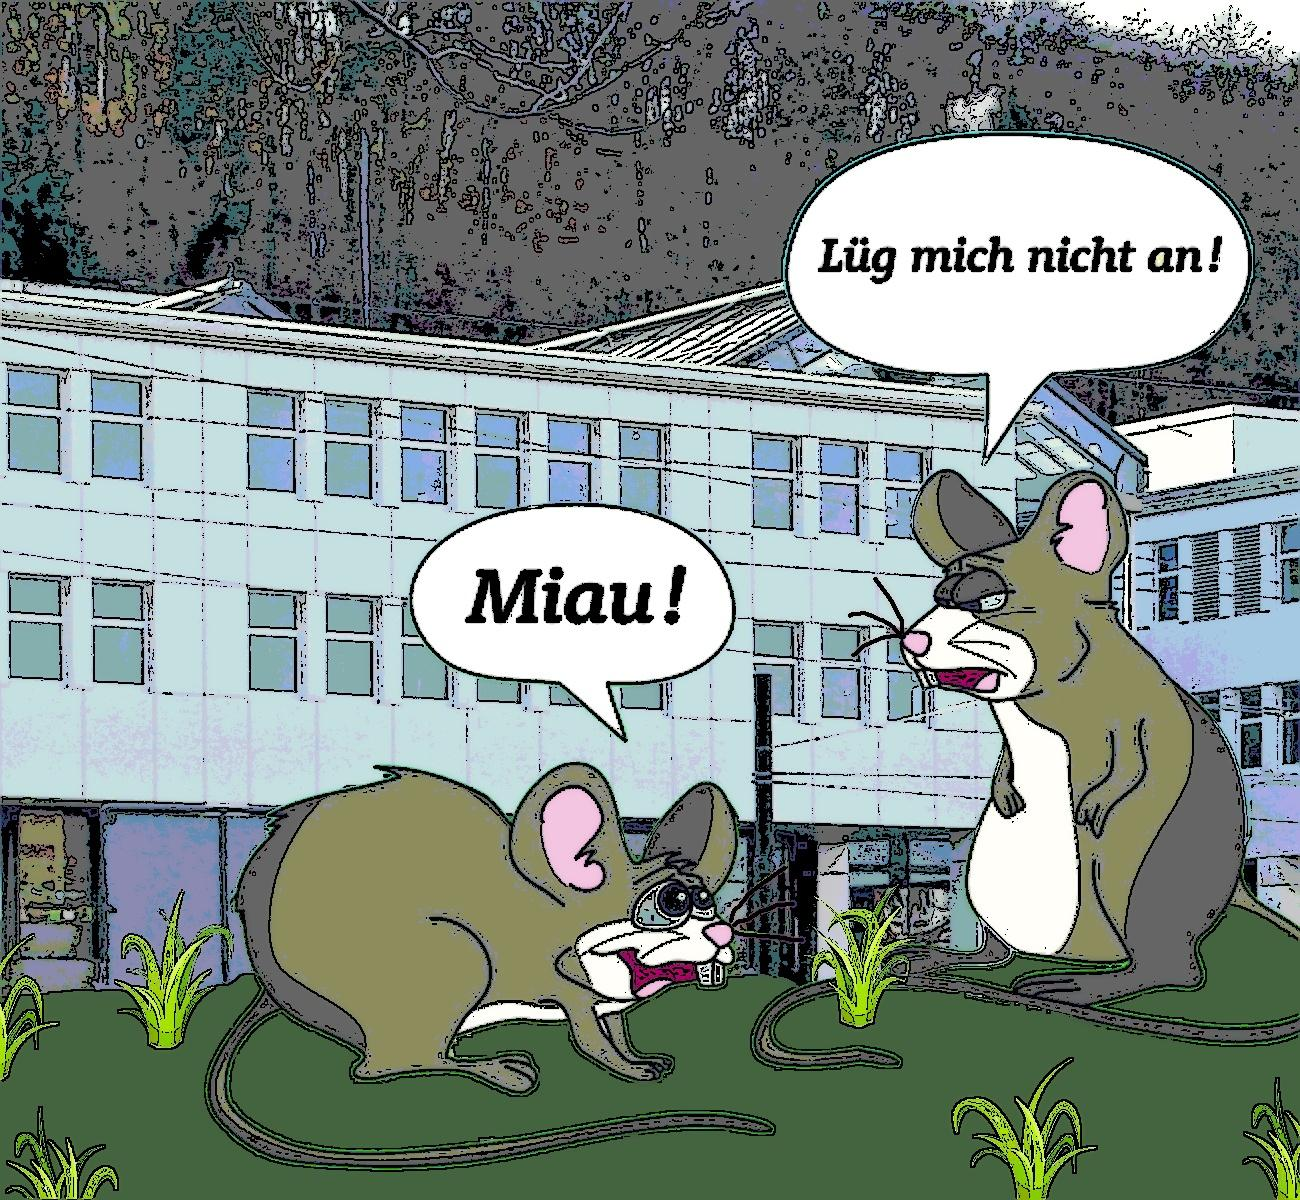 https://grundrechte.ch/2017/BFM_Maus_Gras_Stift.jpg